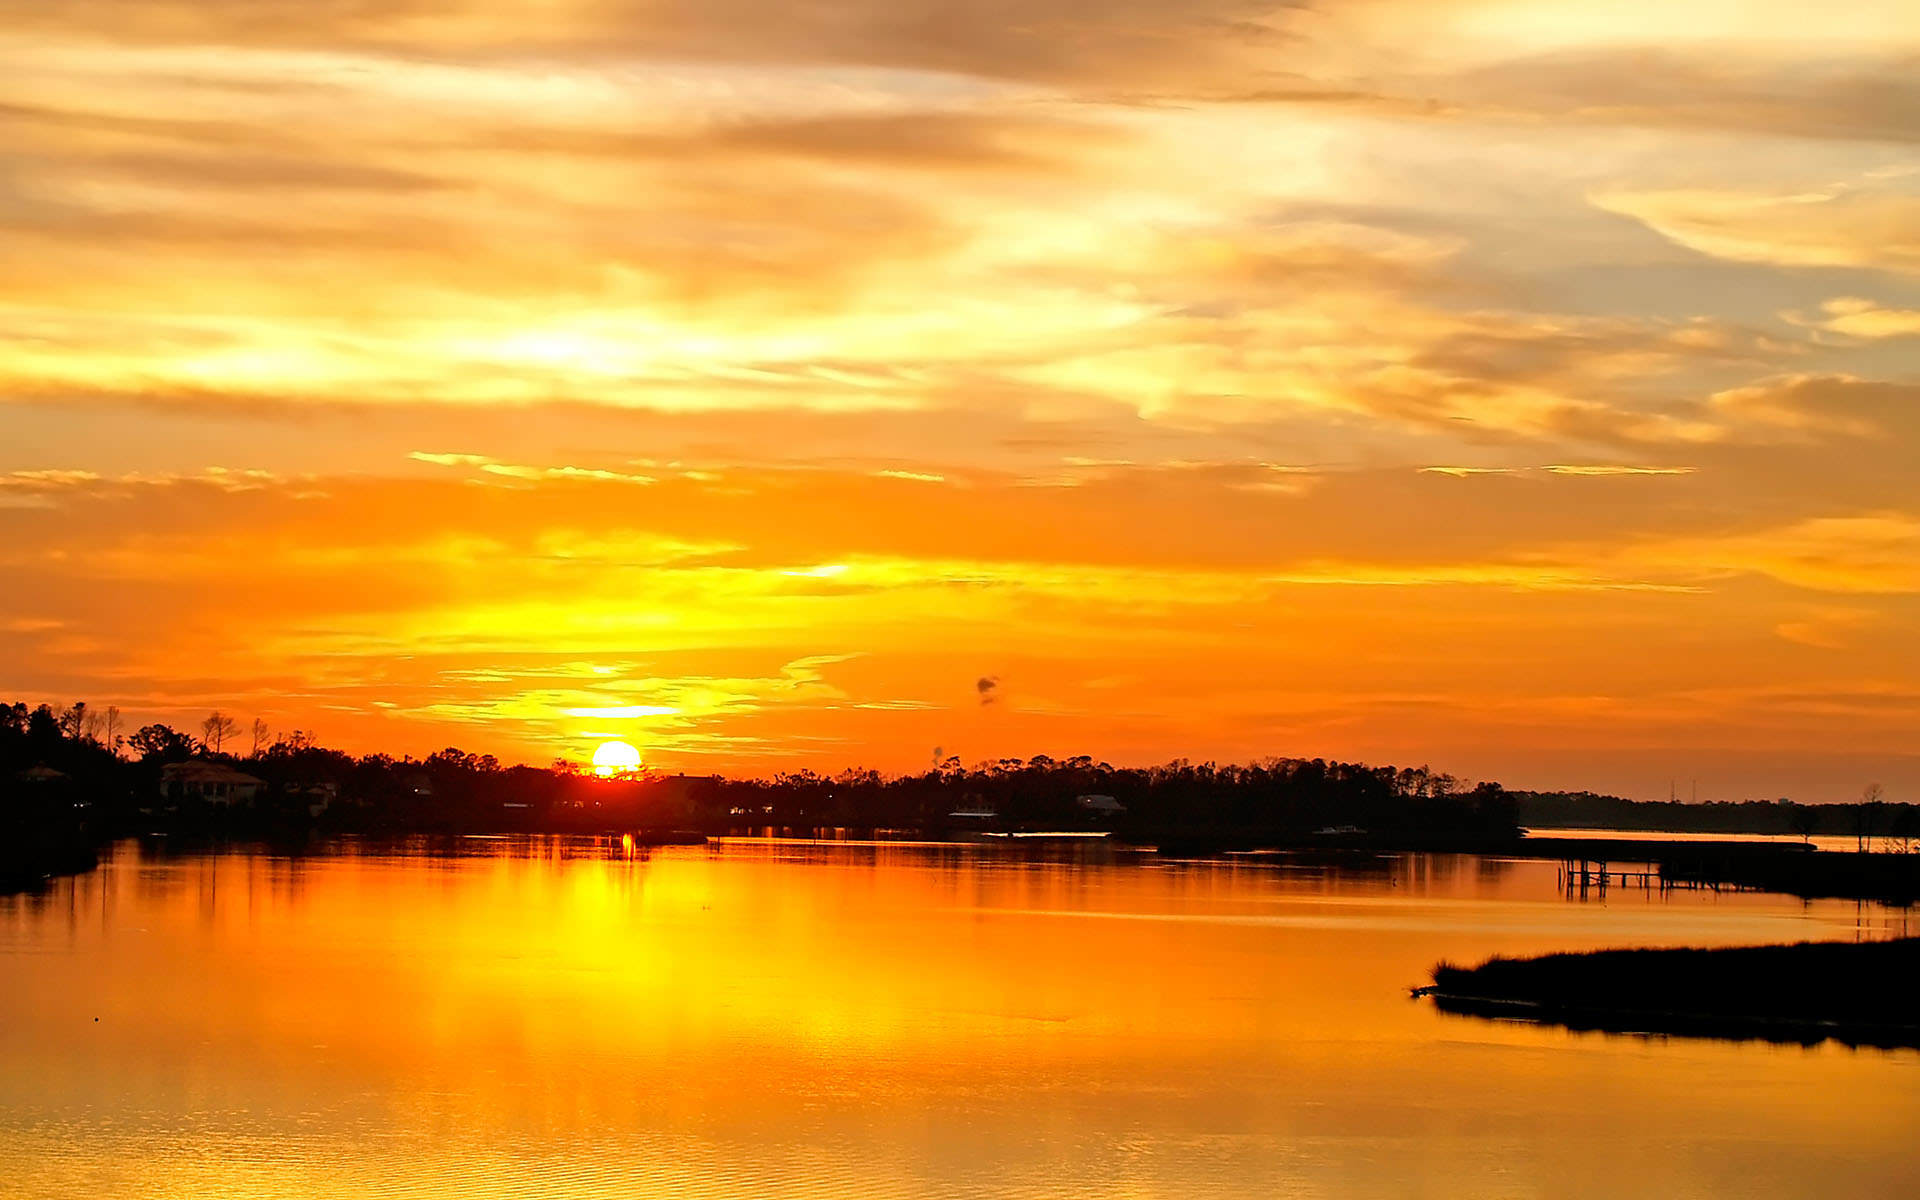 free sunset wallpaper 1920x1200 0120jpg 1920x1200